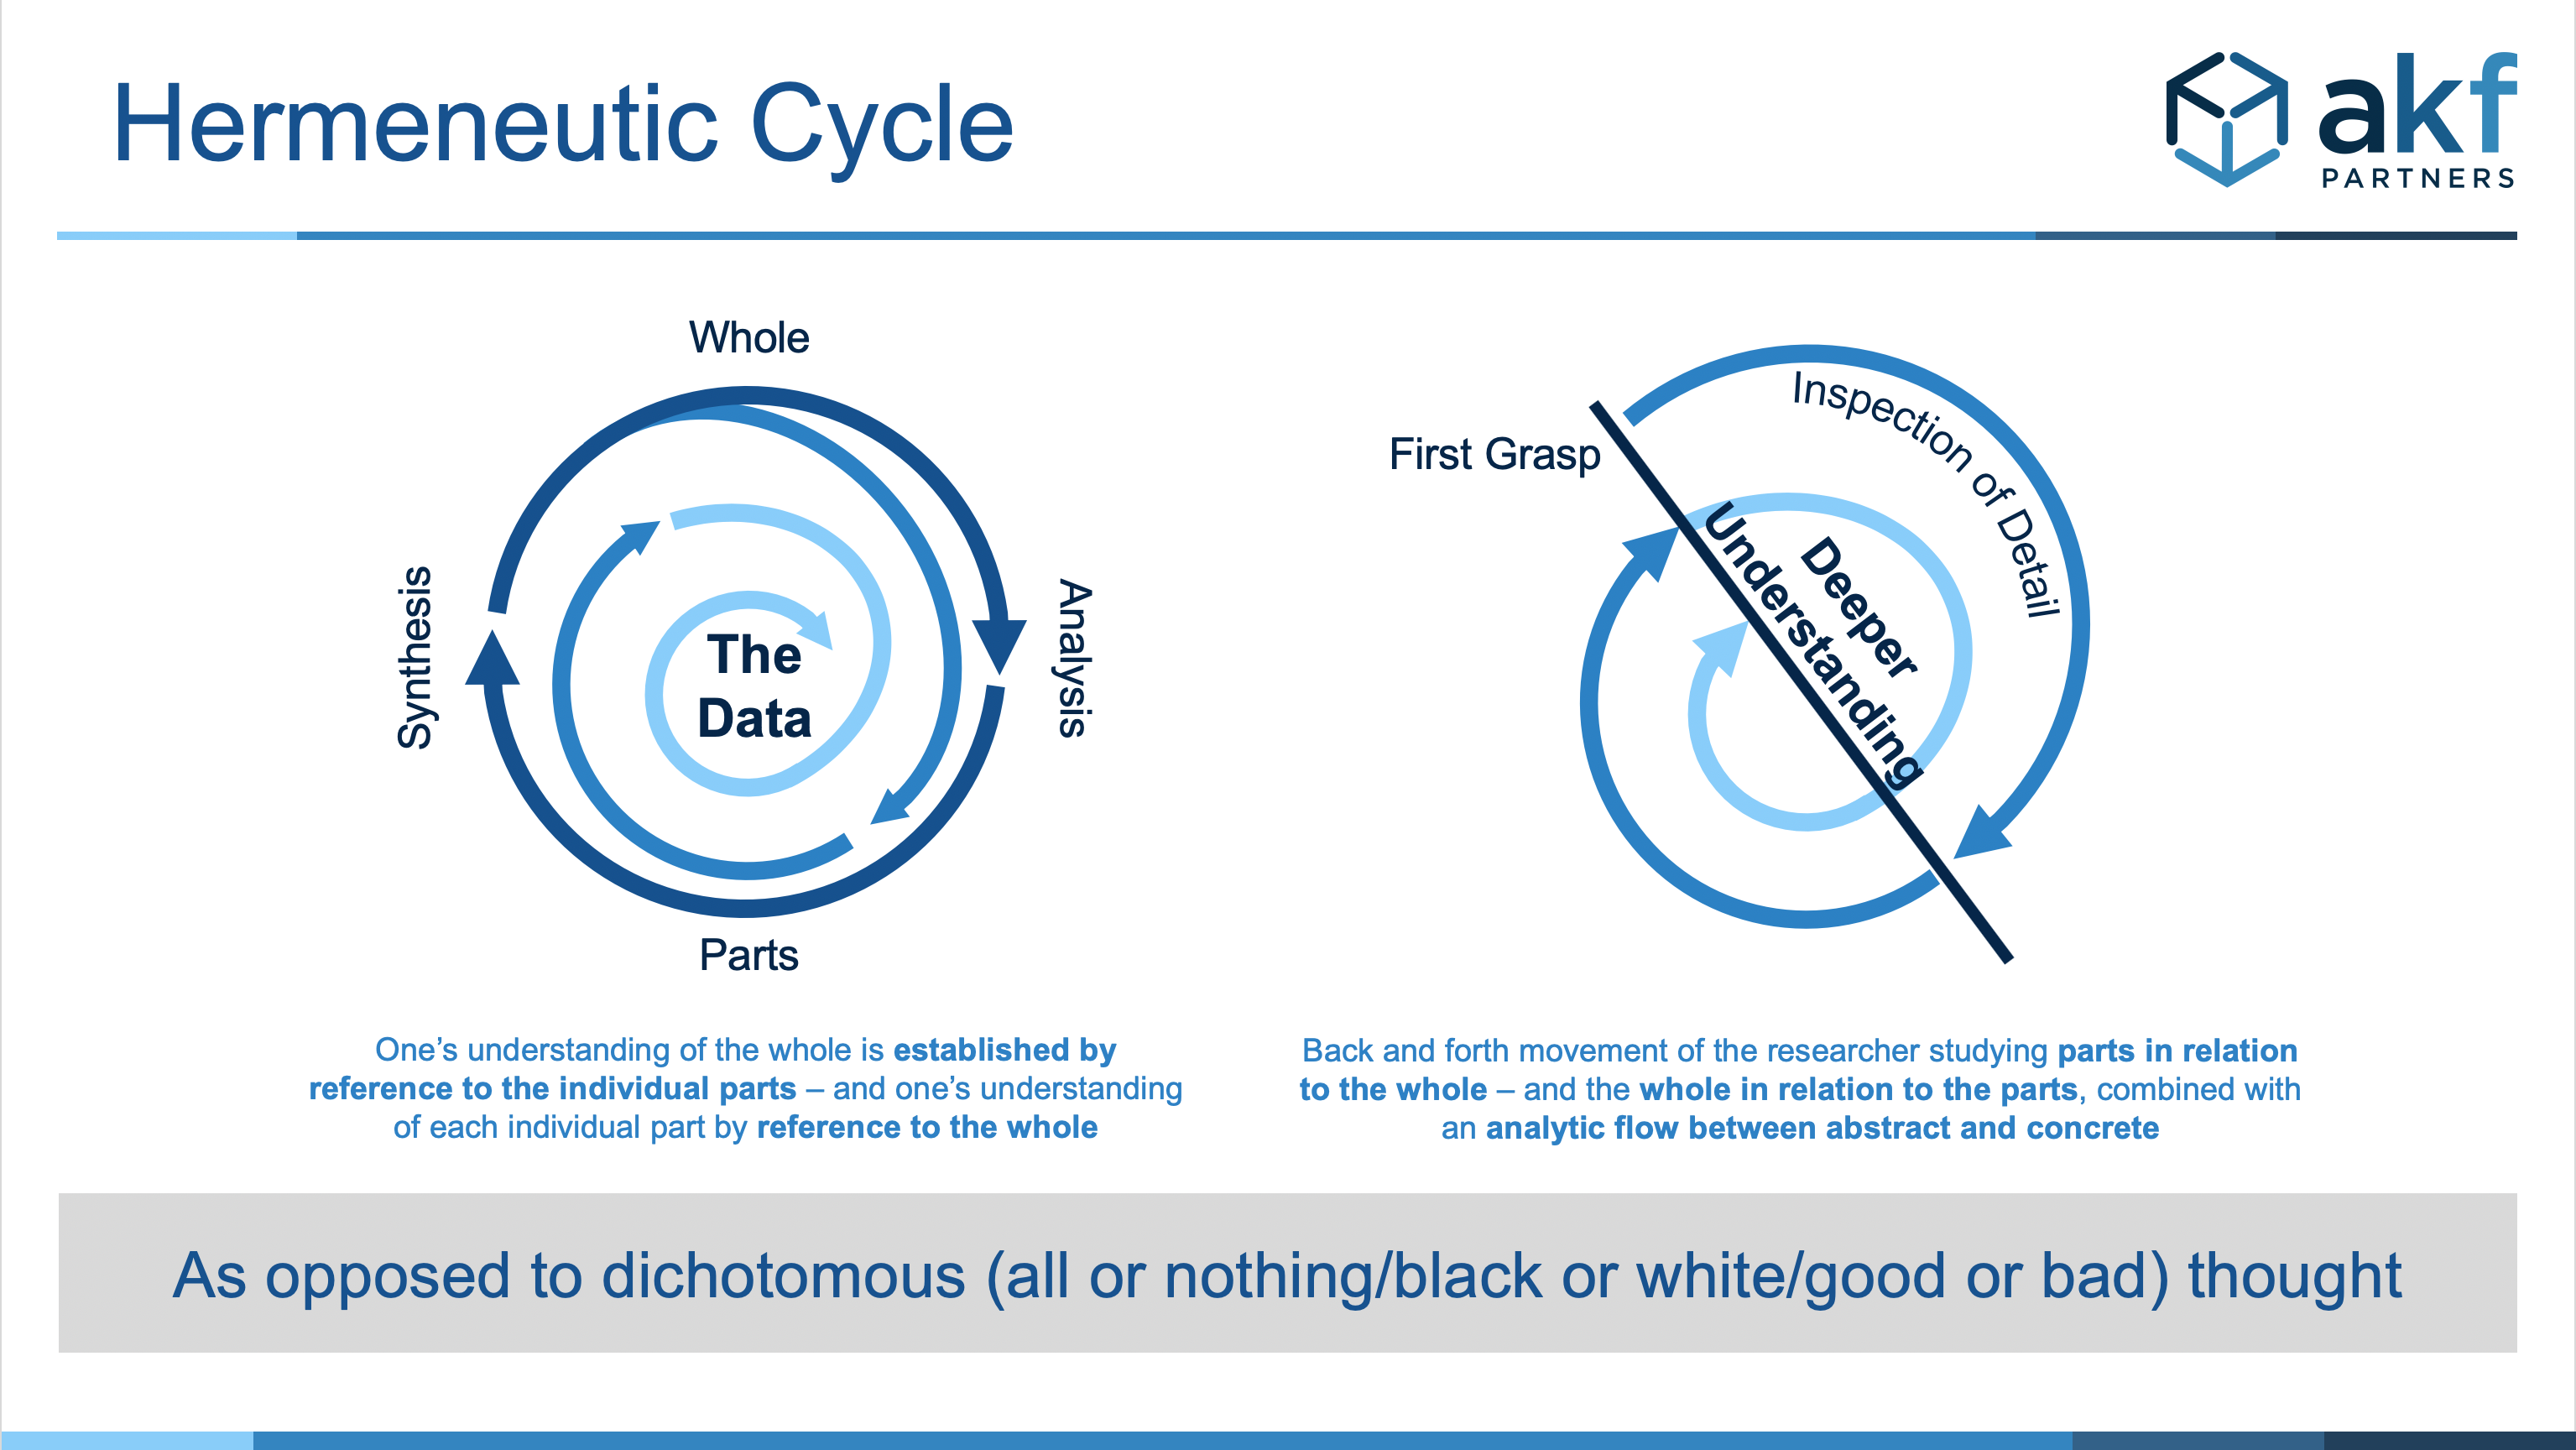 Diagram of Hermeneutic Cycle